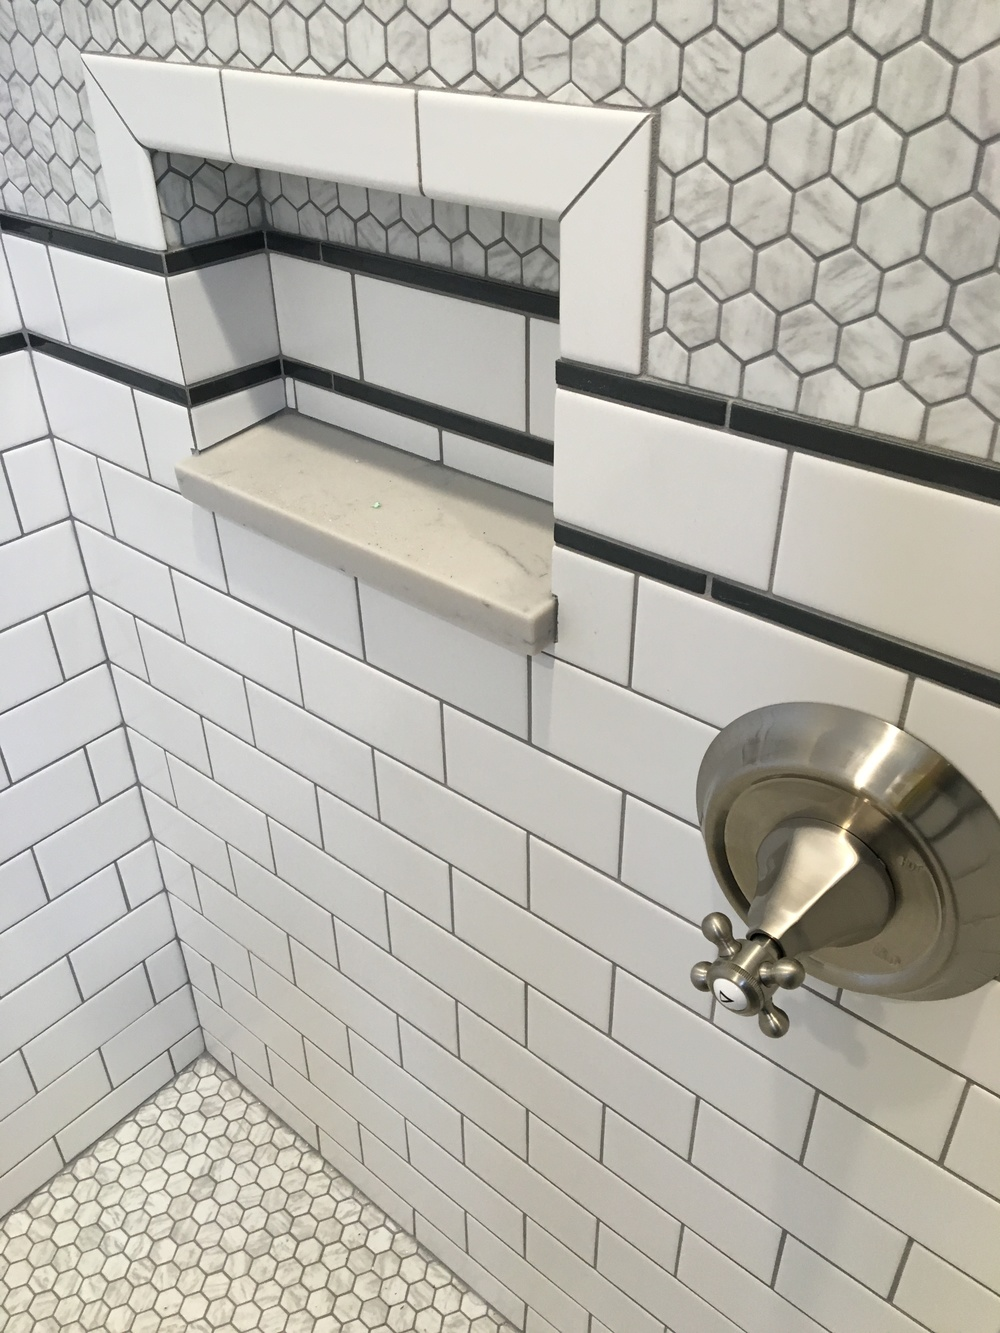 Bathroom remodel | Interior designer: Angela Todd Designs